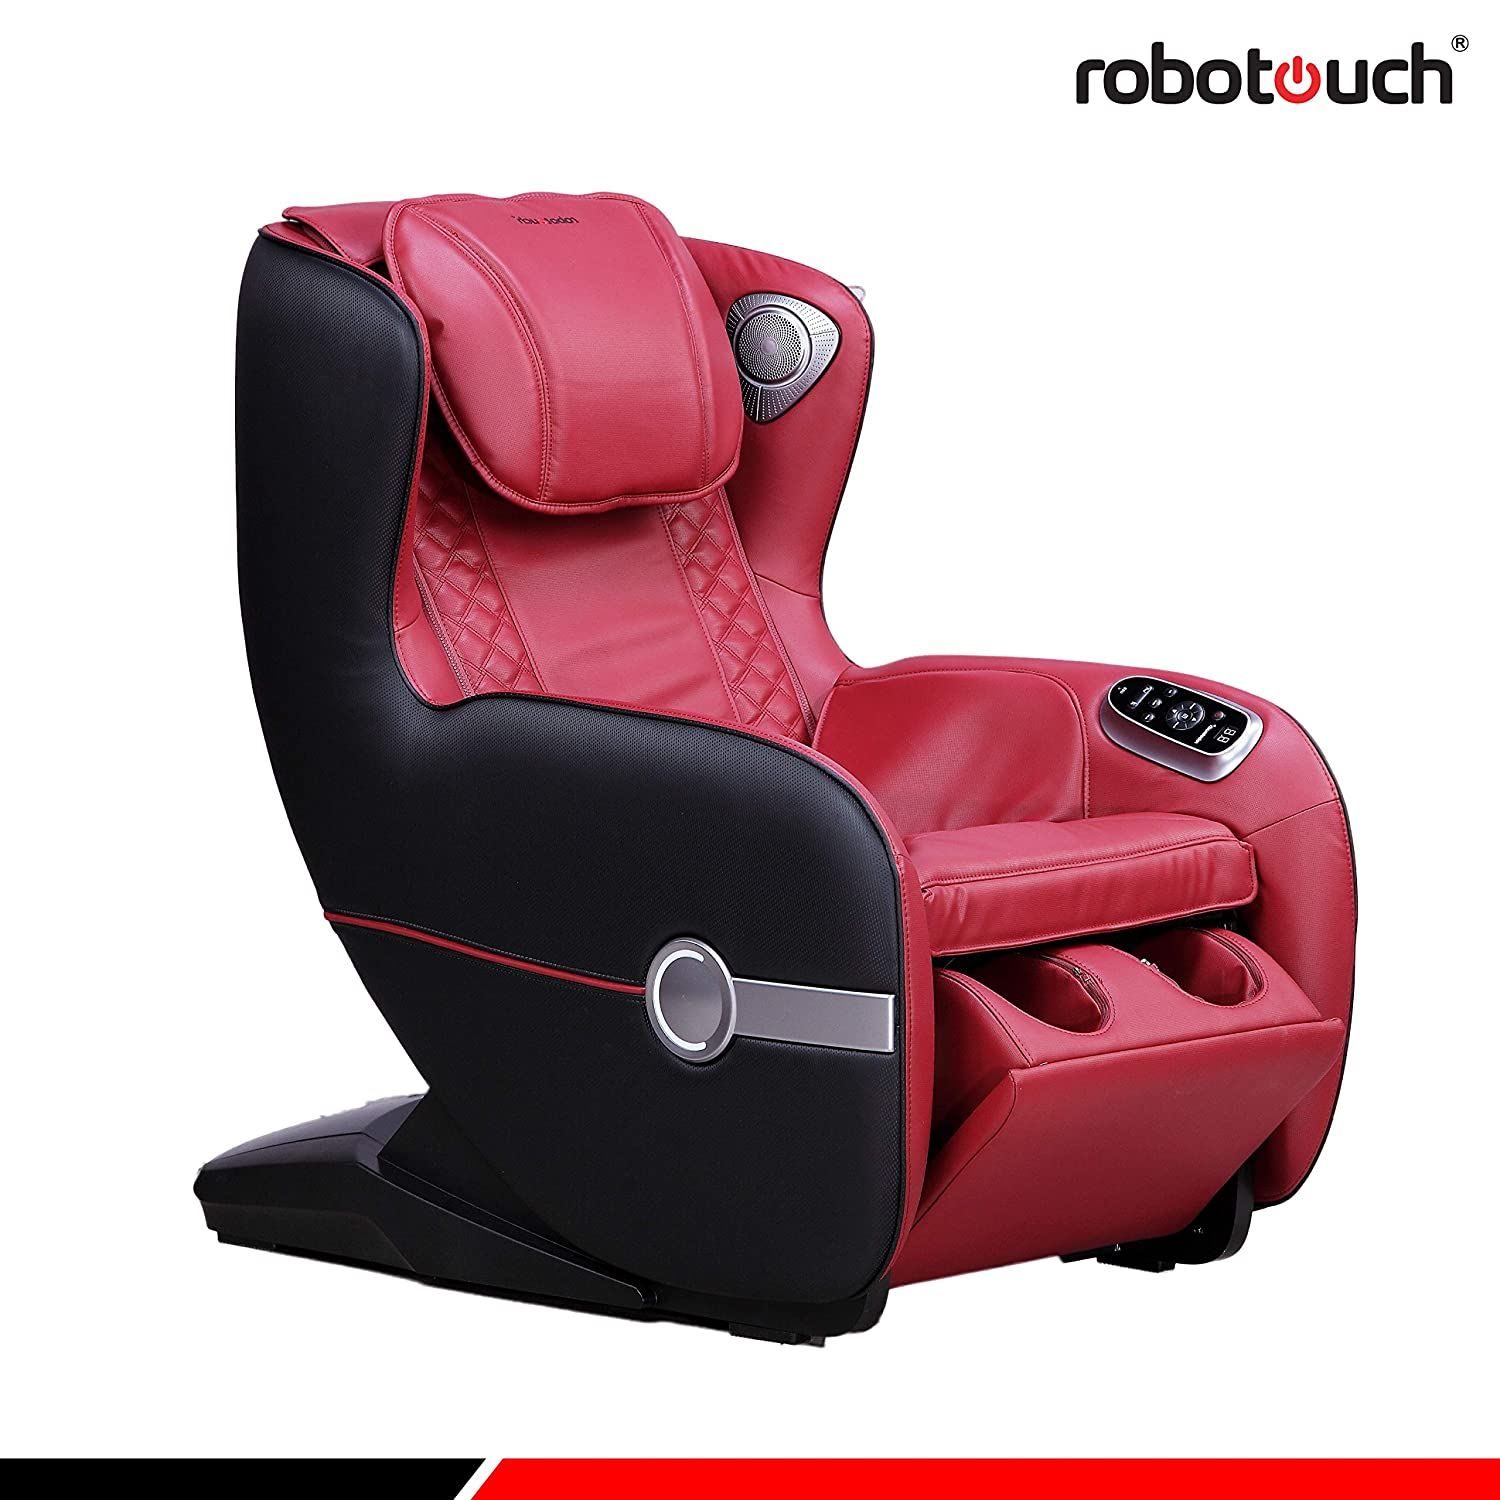 Robotouch Relaxo Pro Massage Sofa With Foldable Footrest